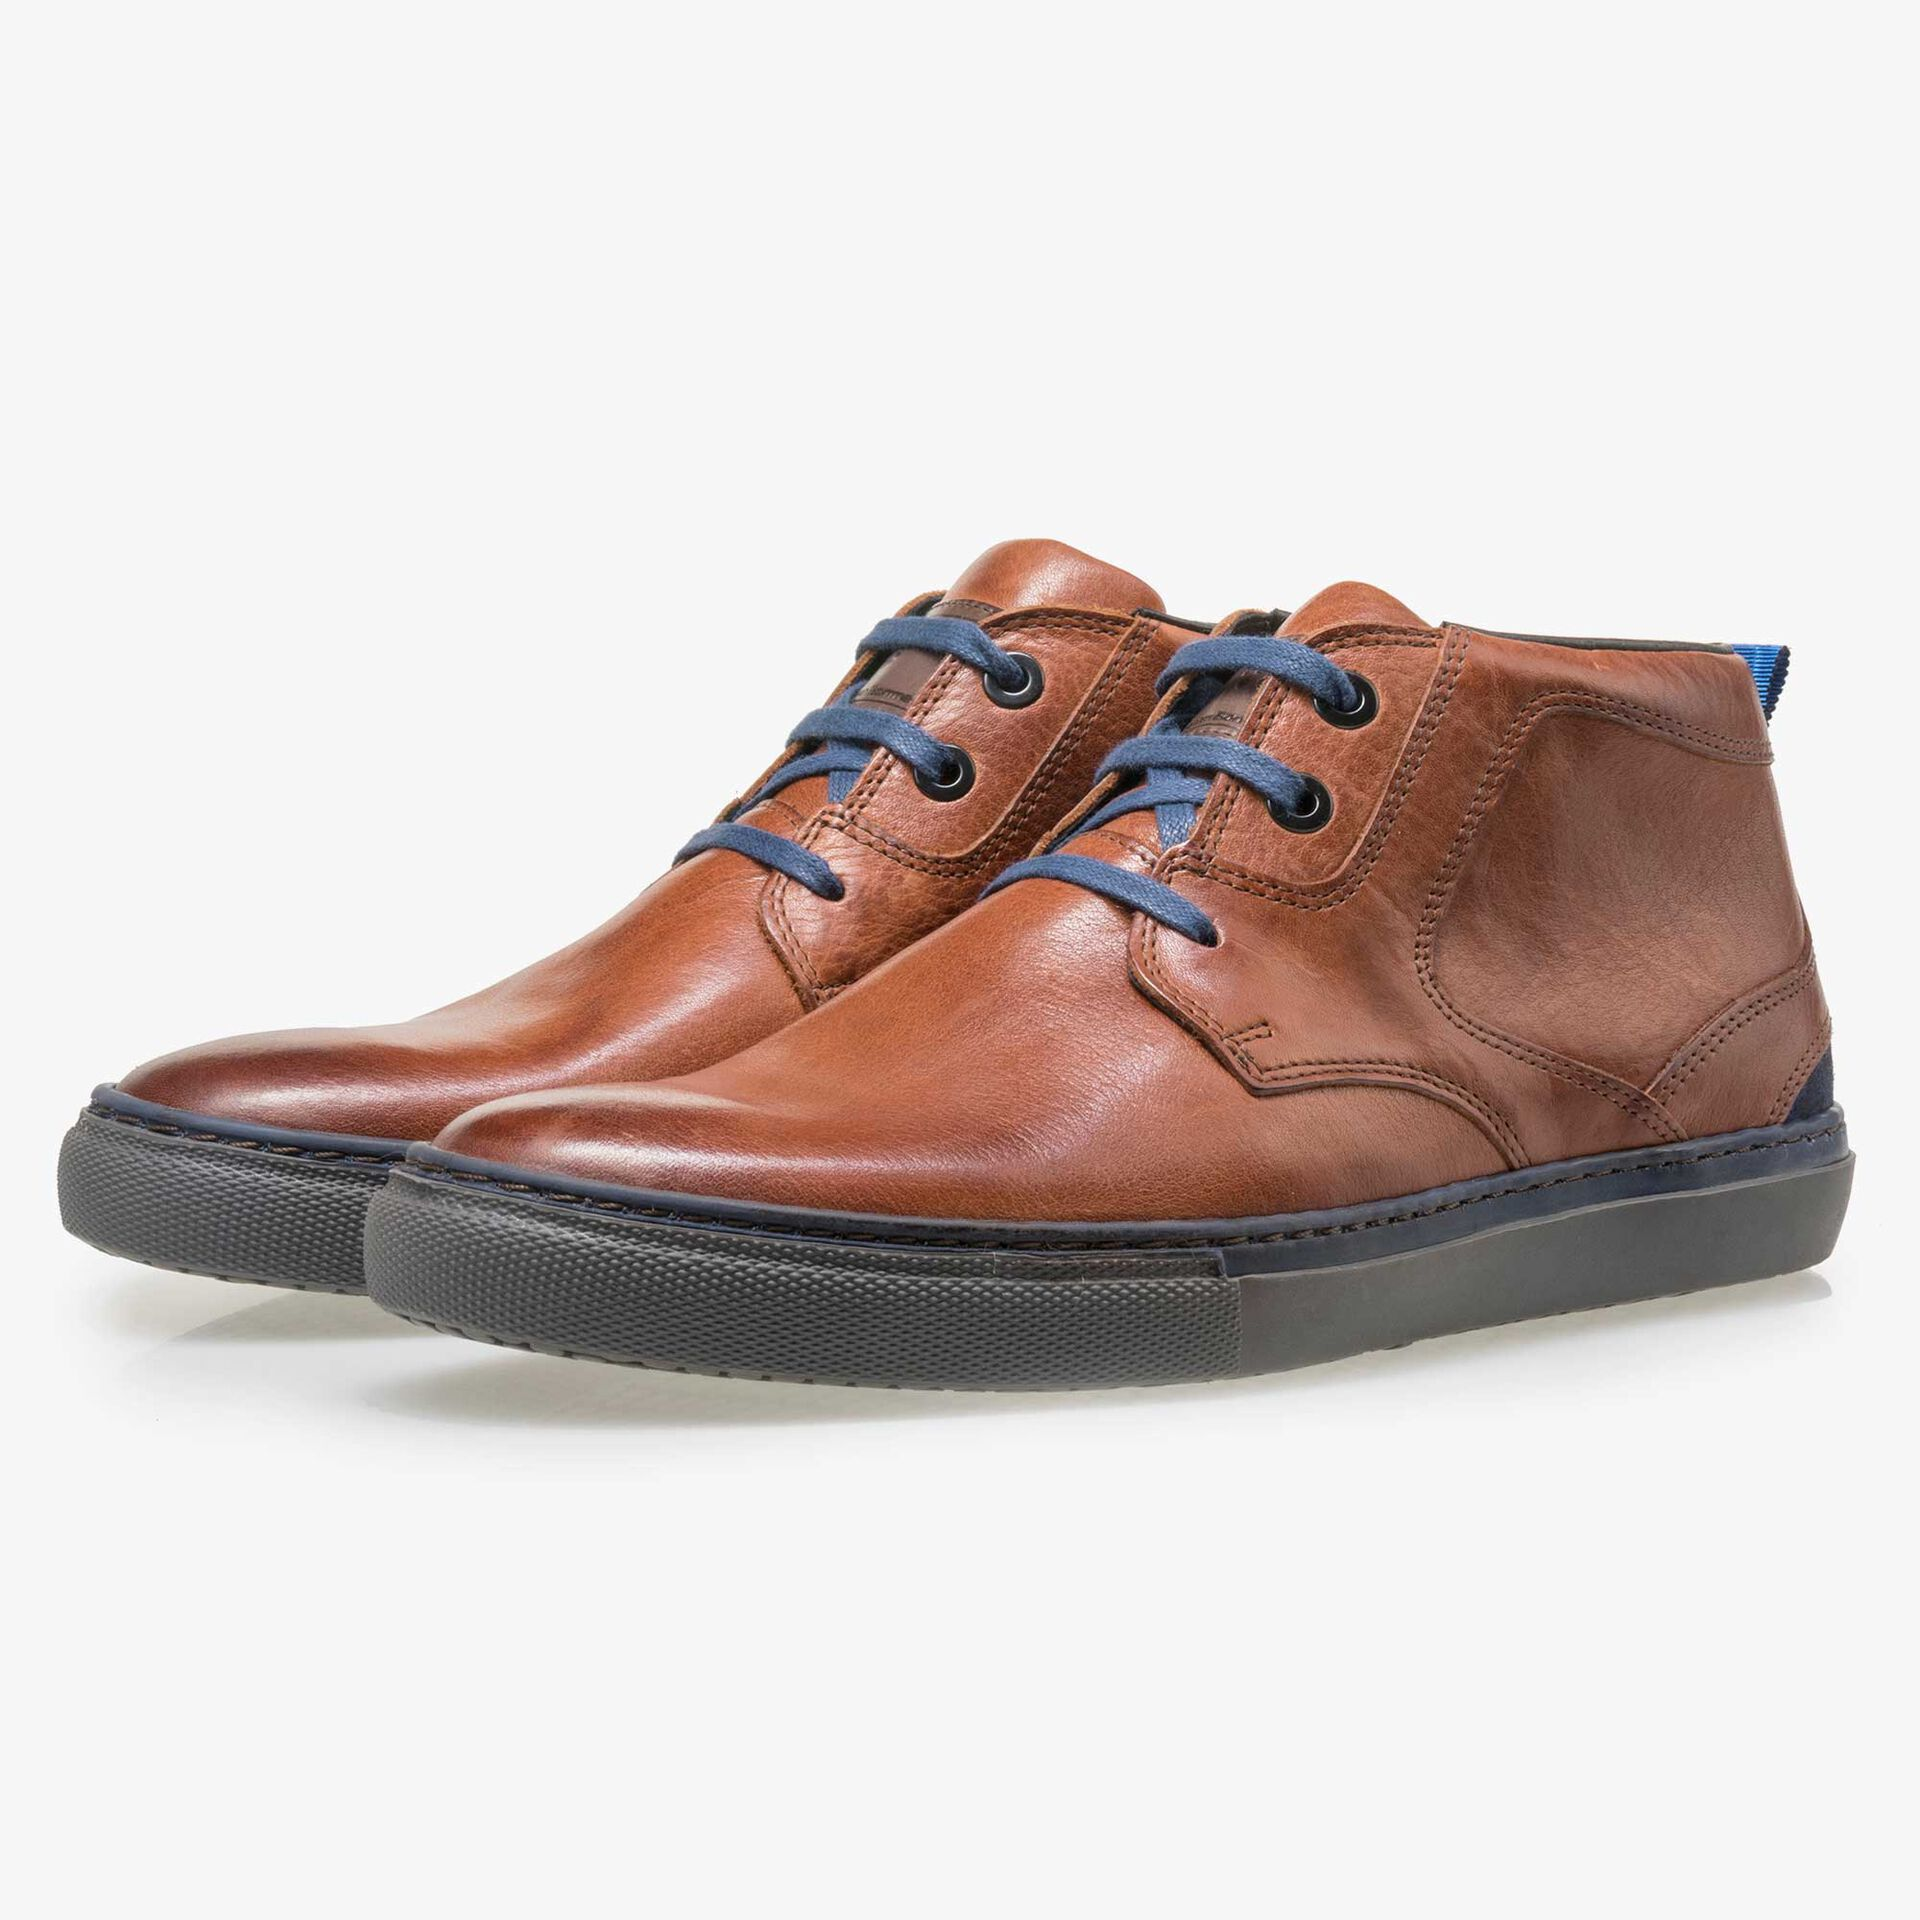 Floris van Bommel men's cognac-coloured leather lace boot